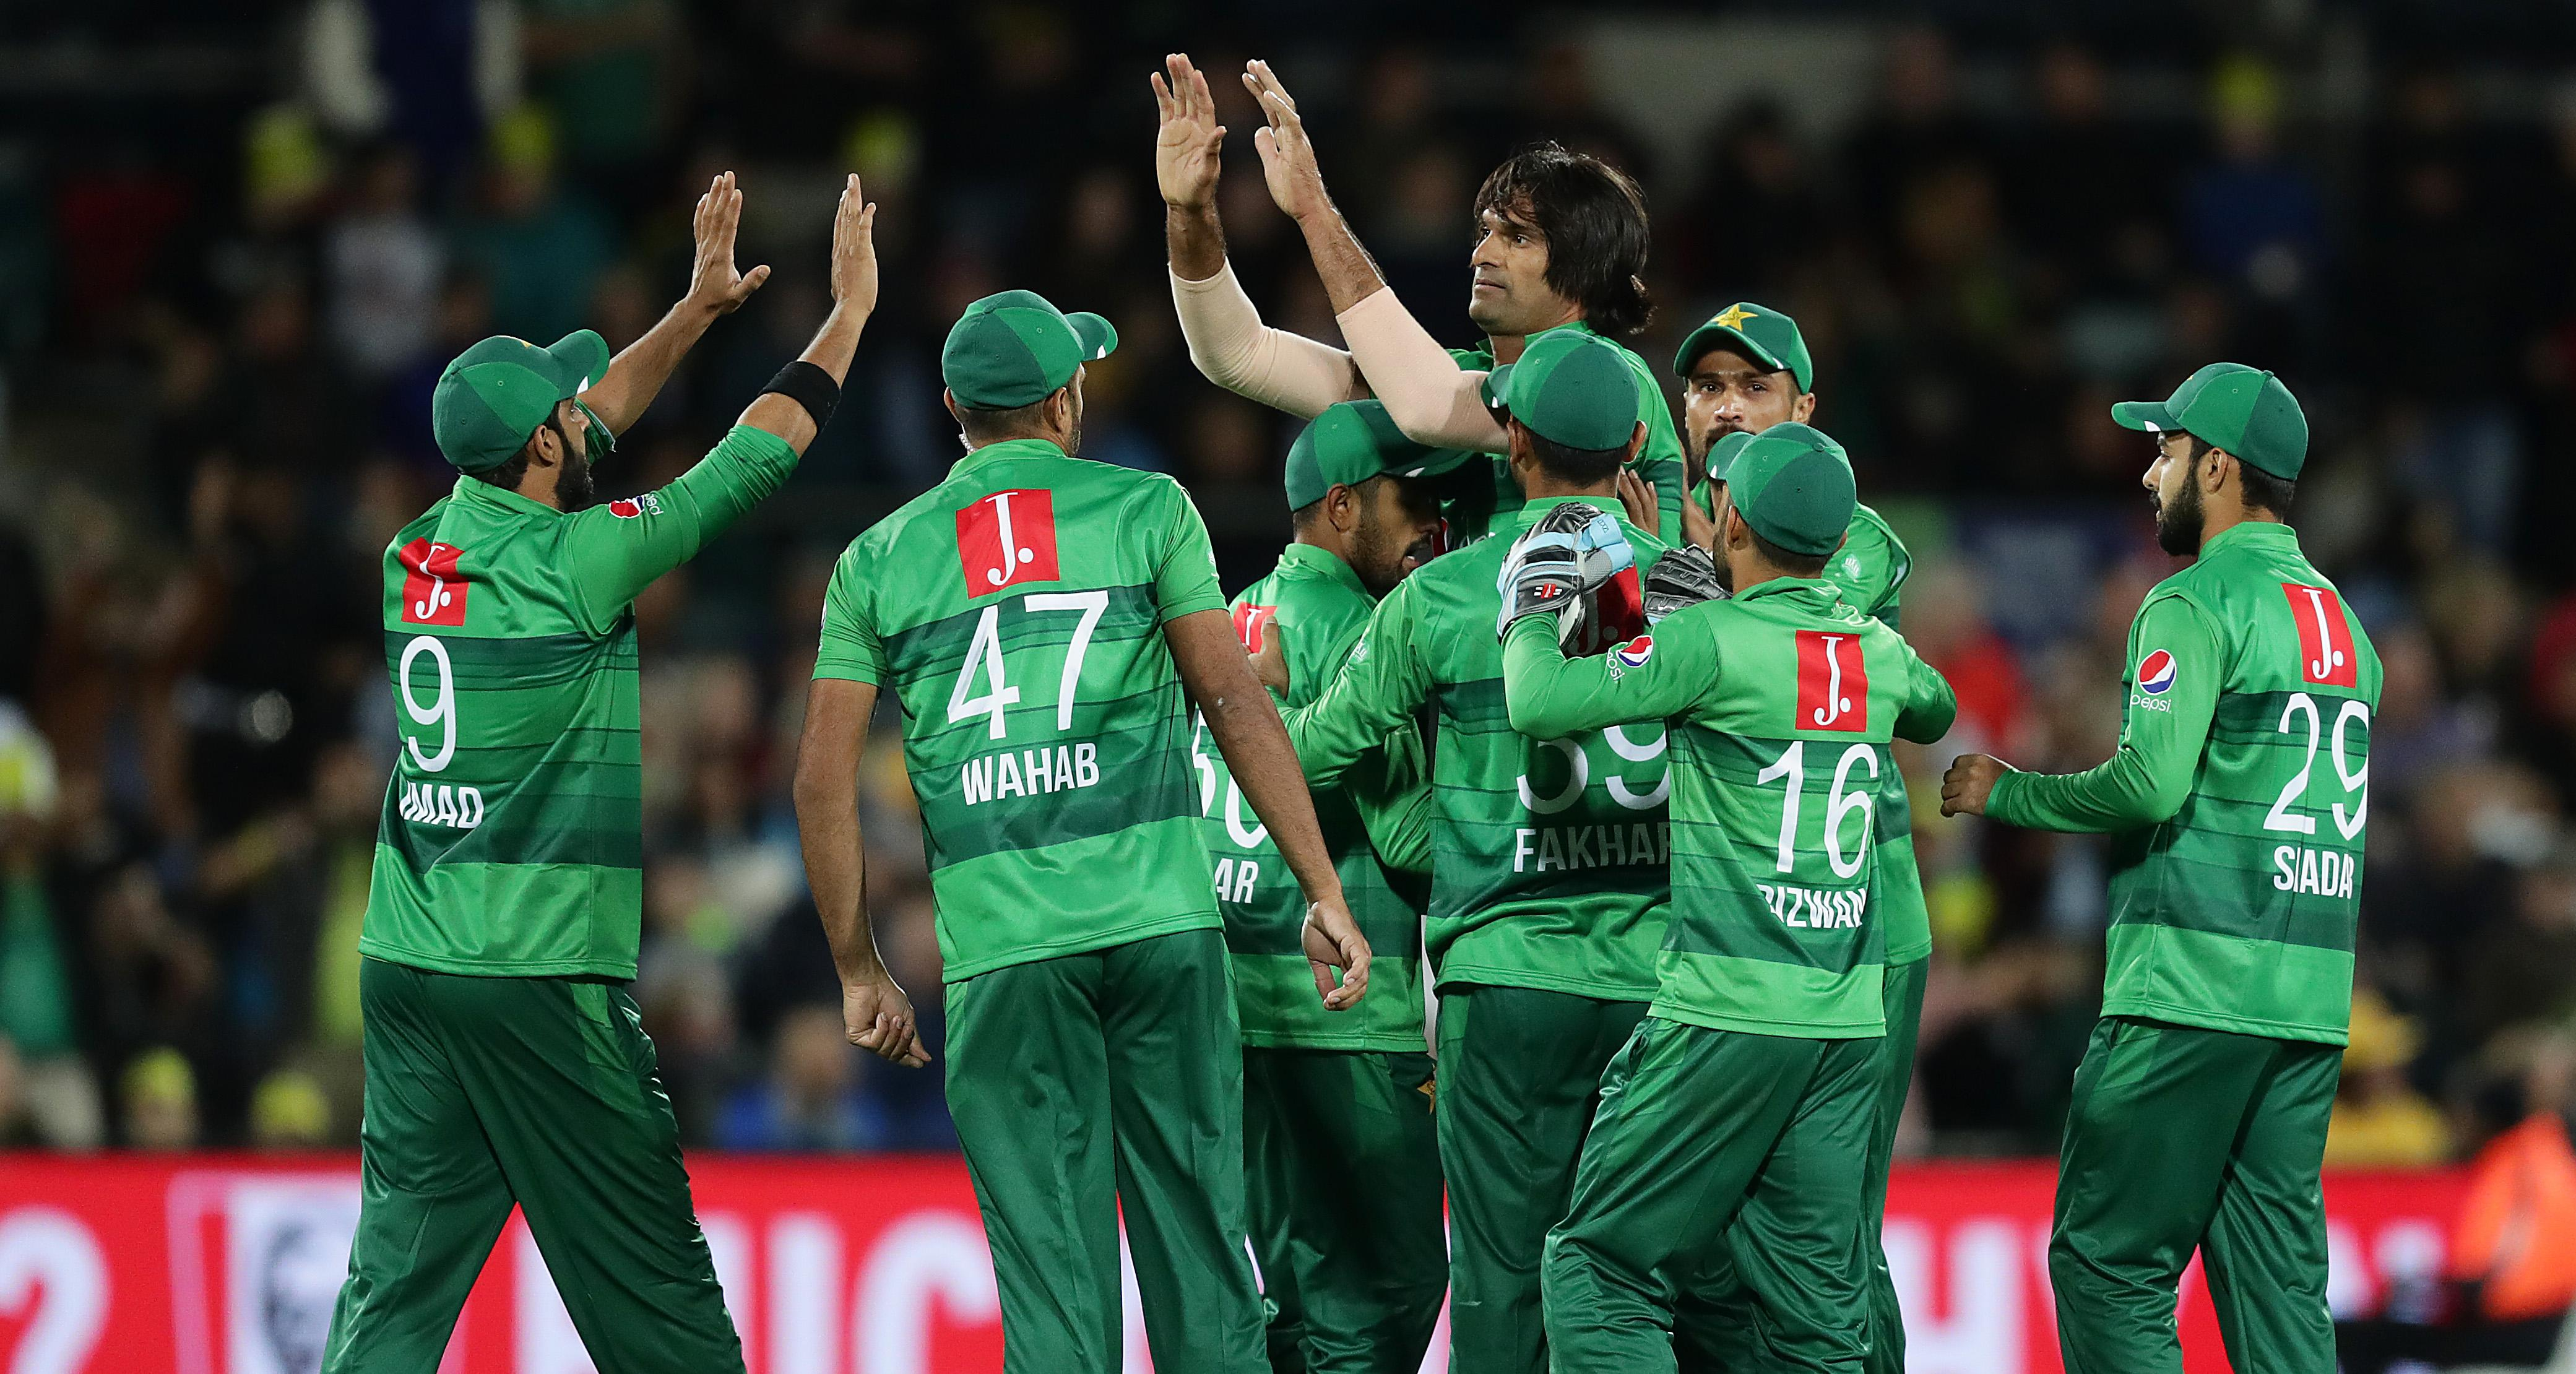 Pakistan seek revival of T20I fortunes at home